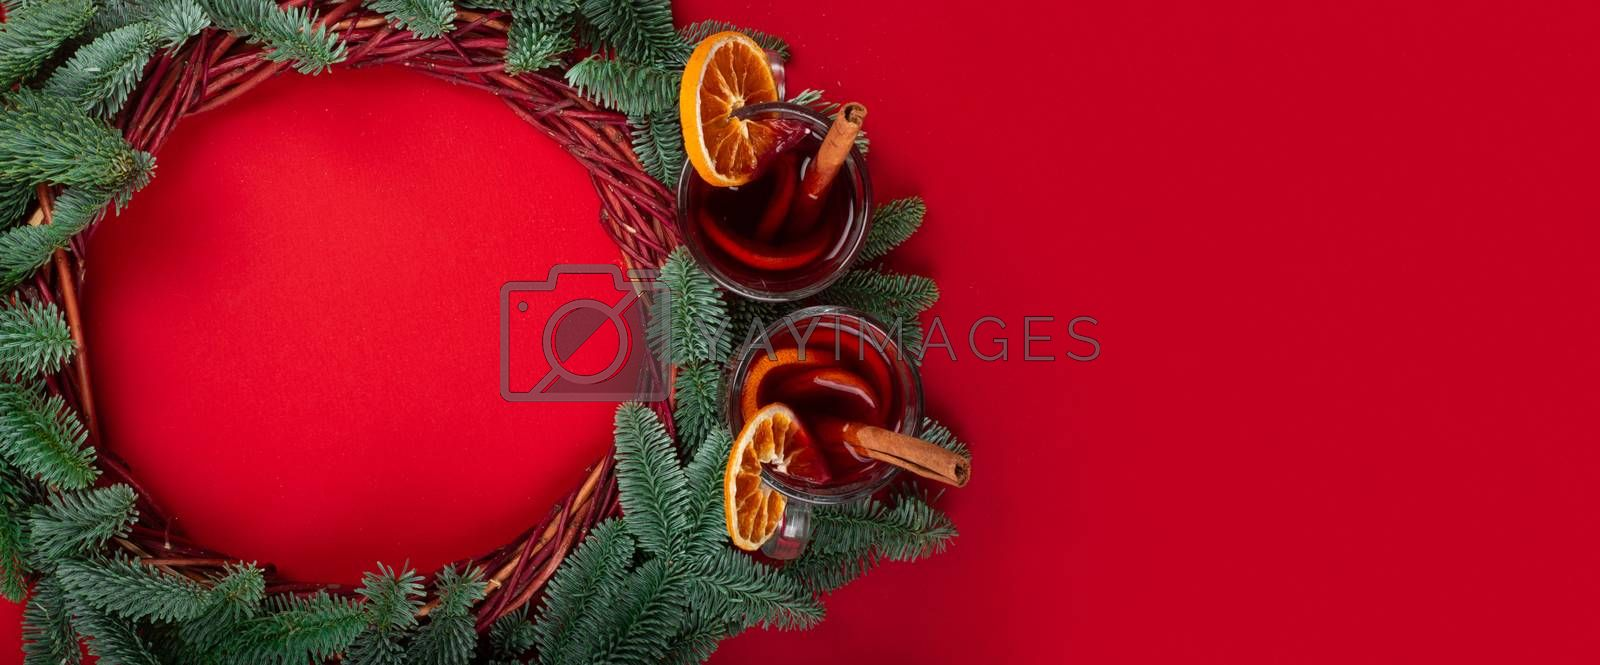 Christmas decorative wreath with noble fir tree twigs and mulled wine on red paper background with copy space for text